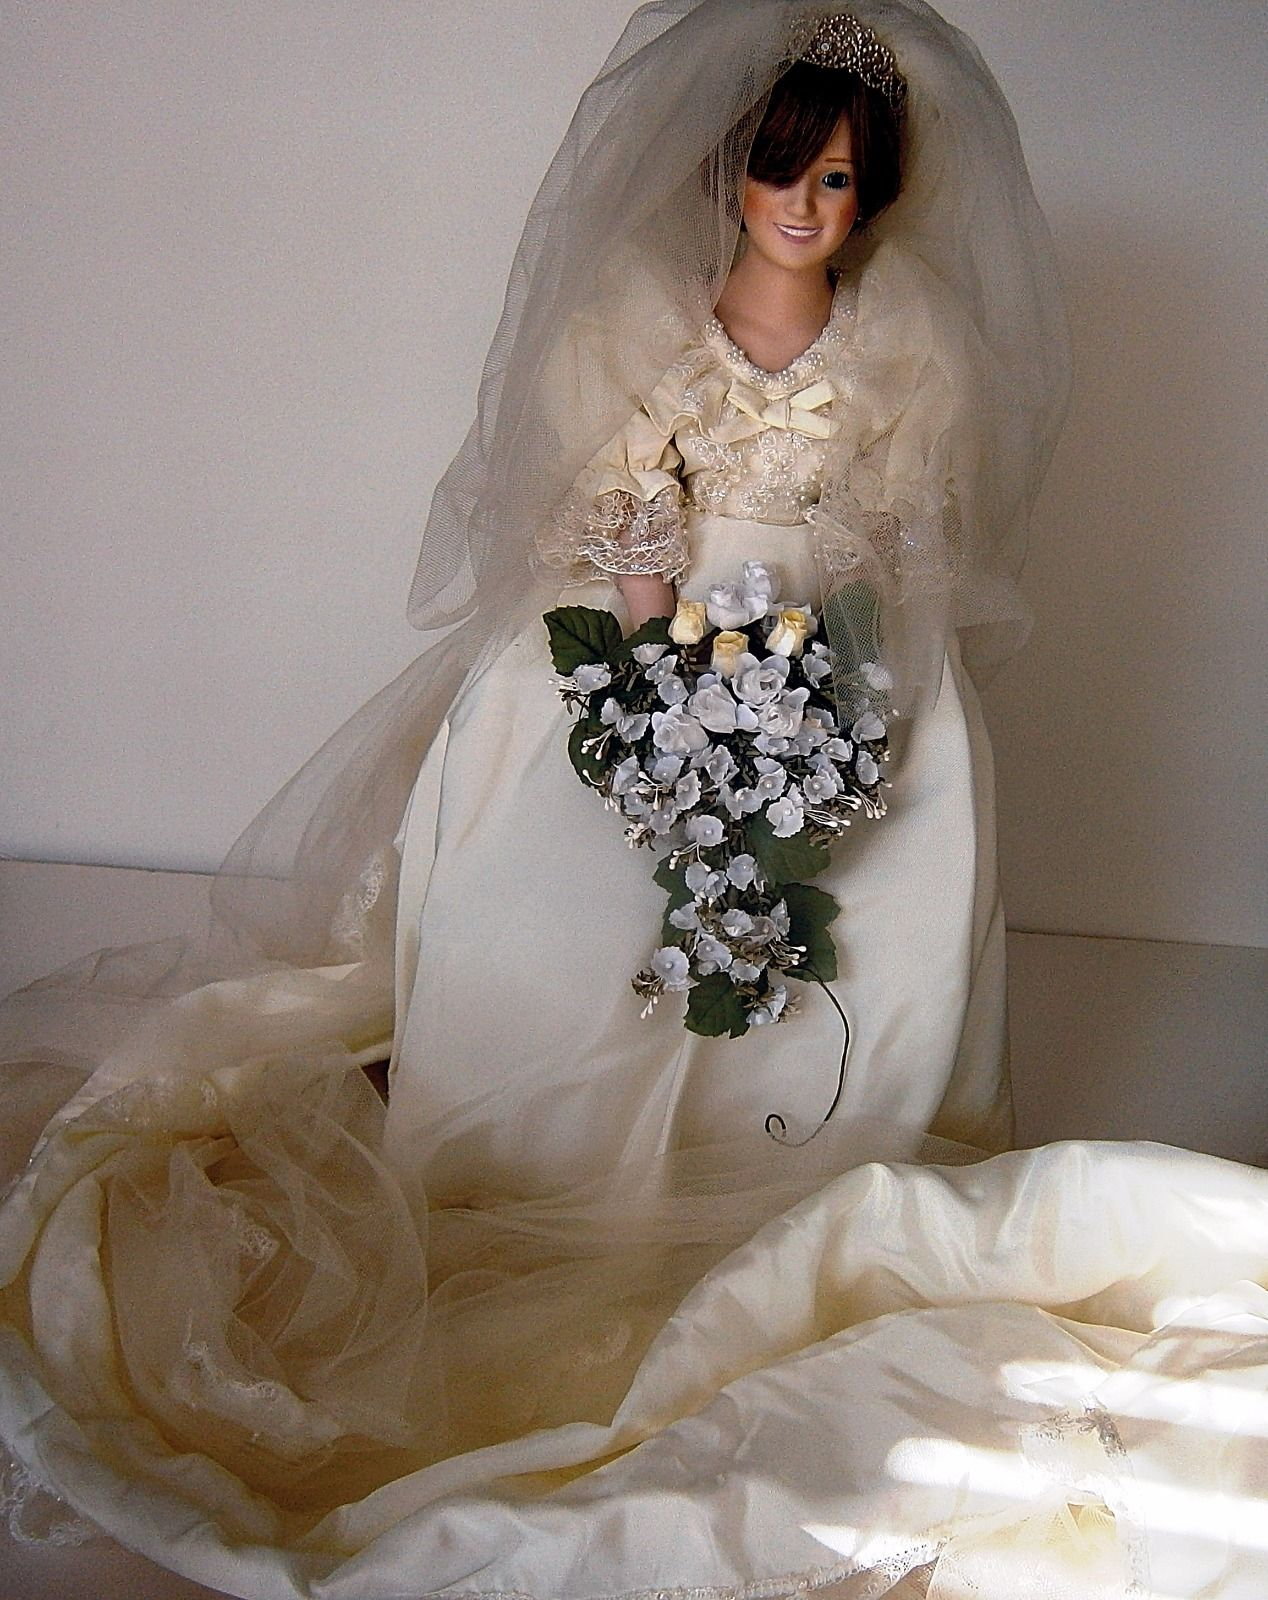 The Princess Diana Bride Doll by Danbury Mint image 3